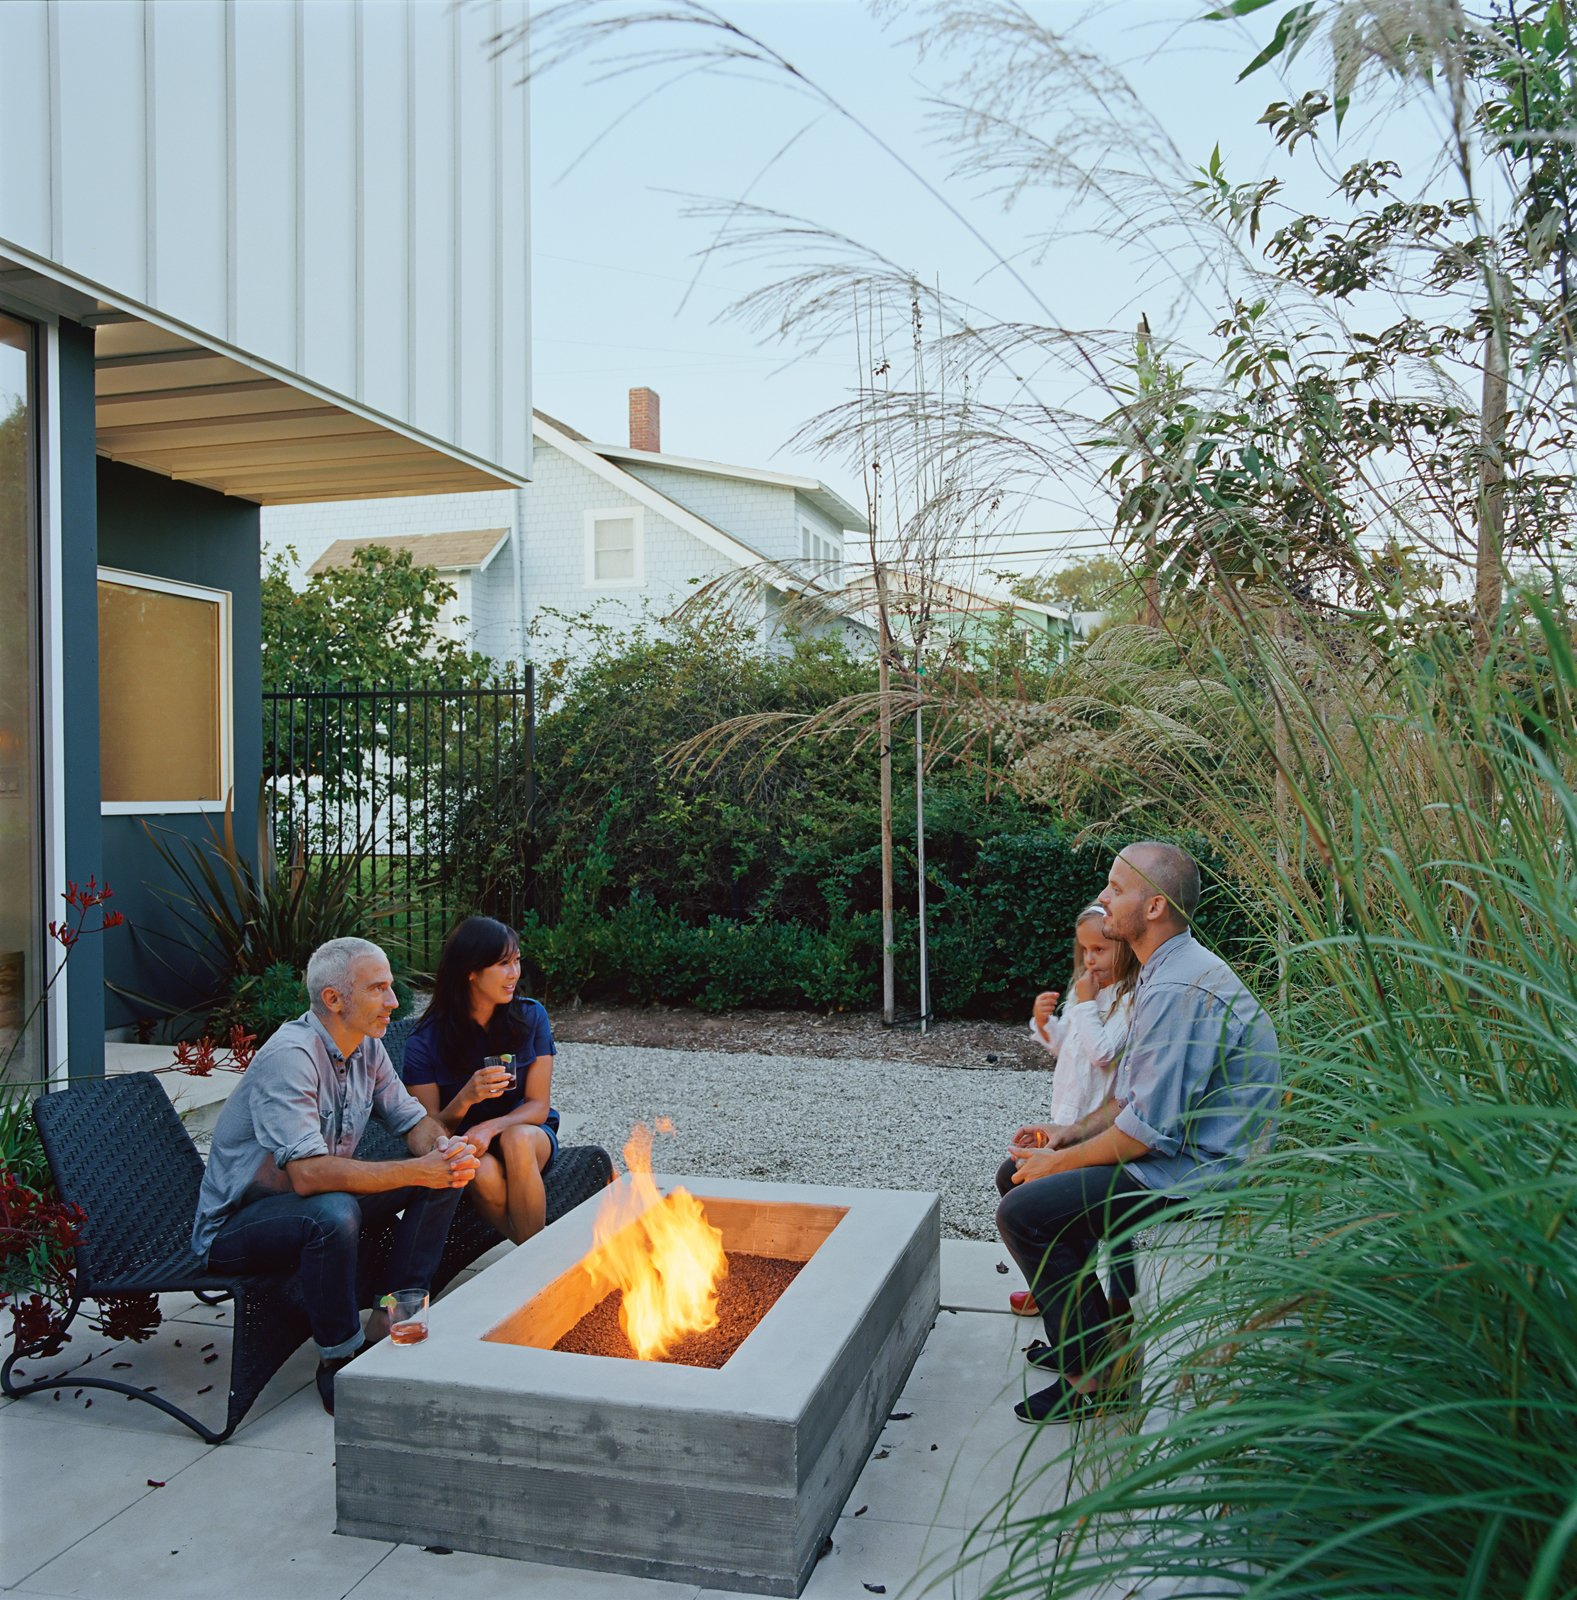 168233_17_007  97+ Modern Fireplace Ideas by Dwell from Daft Punk Could Play at This House